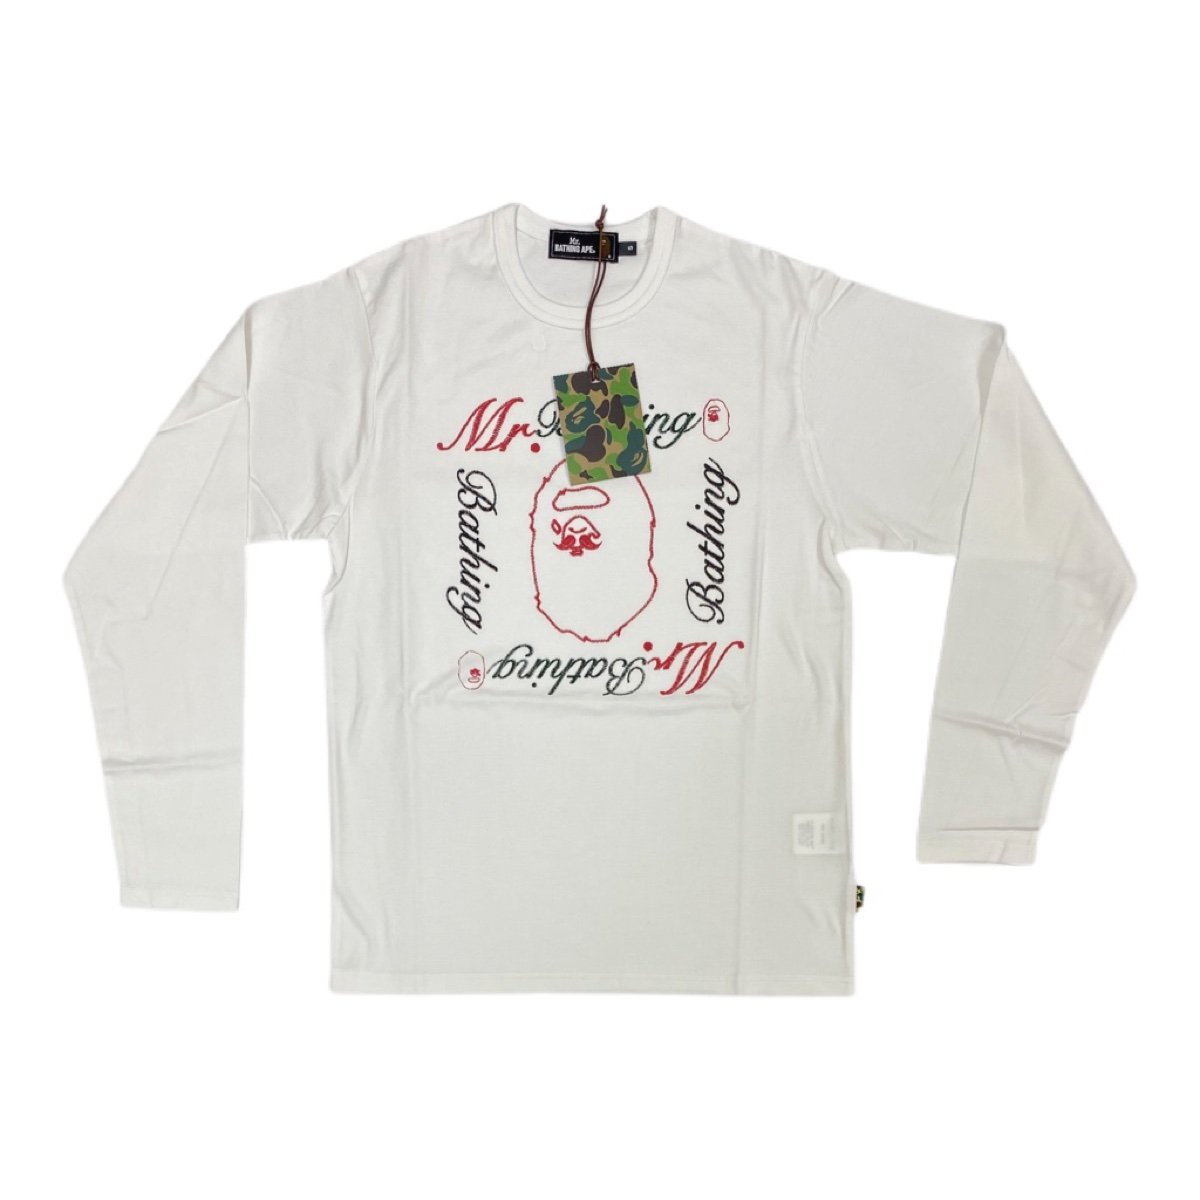 Authentic mr bathing ape white L/S tee